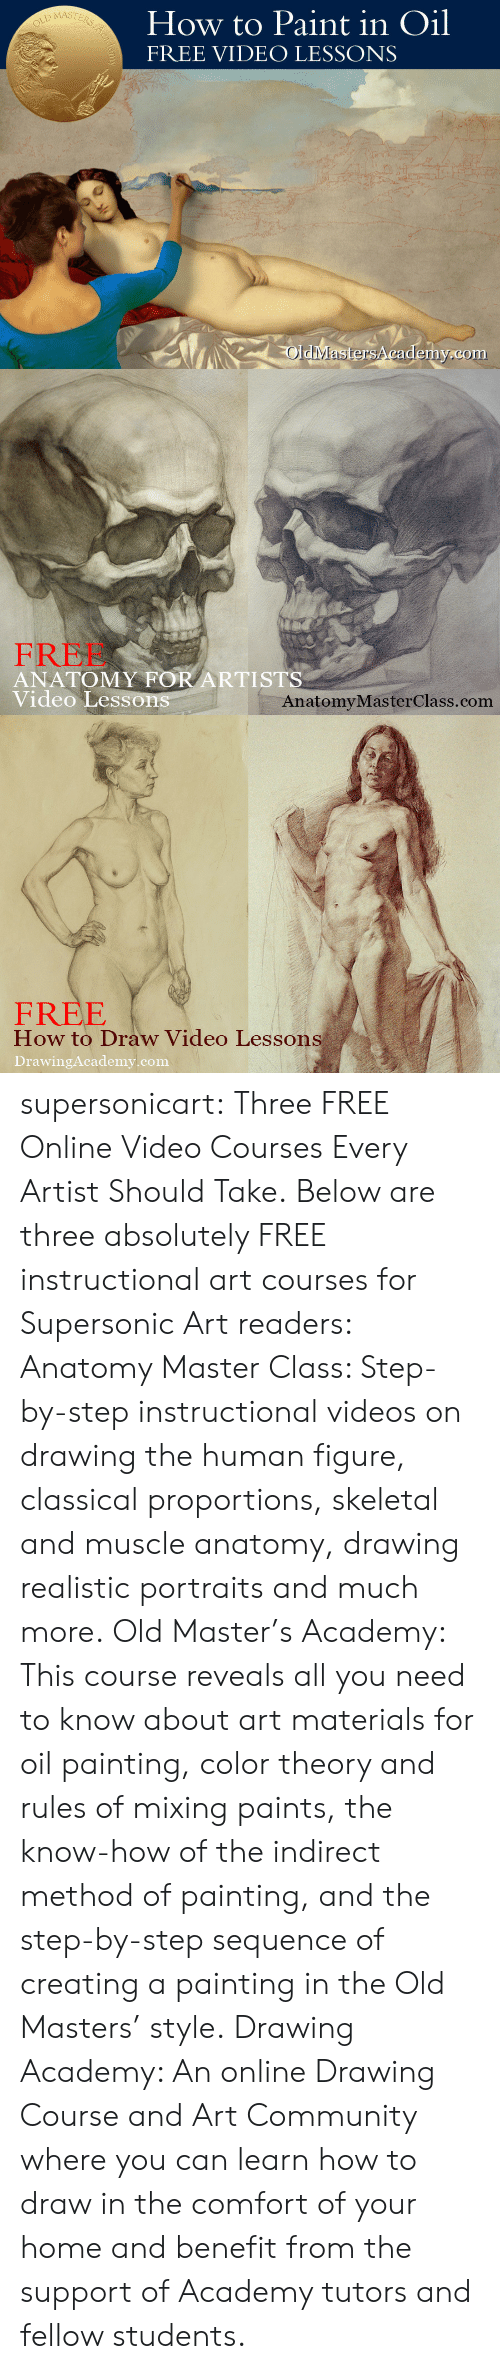 Community, Tumblr, and Videos: How to Paint in Oil  FREE VIDEO LESSONS  MASTE  Rs  OldiMastersA cademy.com   FREE  ANATOMY FOR ARTISTS  Video Lesson  AnatomyMasterClass.com   FREE  How to Draw Video Lessons  DrawingAcademy.com supersonicart: Three FREE Online Video Courses Every Artist Should Take. Below are three absolutely FREE instructional art courses for Supersonic Art readers:  Anatomy Master Class: Step-by-step instructional videos on drawing the human figure, classical proportions, skeletal and muscle anatomy, drawing realistic portraits and much more.  Old Master's Academy: This course reveals all you need to know about art materials for oil painting, color theory and rules of mixing paints, the know-how of the indirect method of painting, and the step-by-step sequence of creating a painting in the Old Masters' style.  Drawing Academy: An online Drawing Course and Art Community where you can learn how to draw in the comfort of your home and benefit from the support of Academy tutors and fellow students.